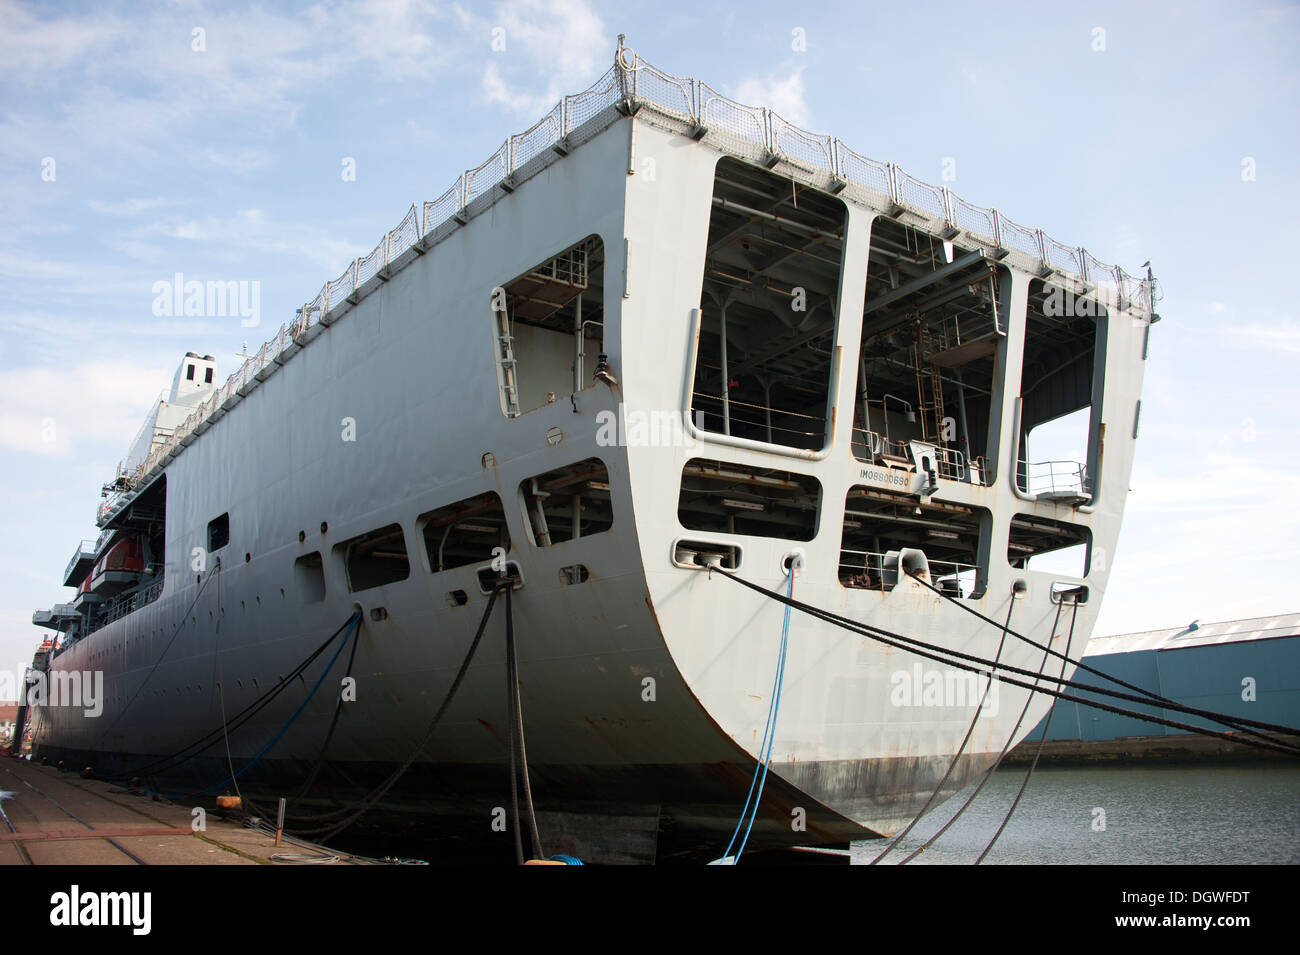 Stern deck of Royal Navy Ship Decommissioned - Stock Image